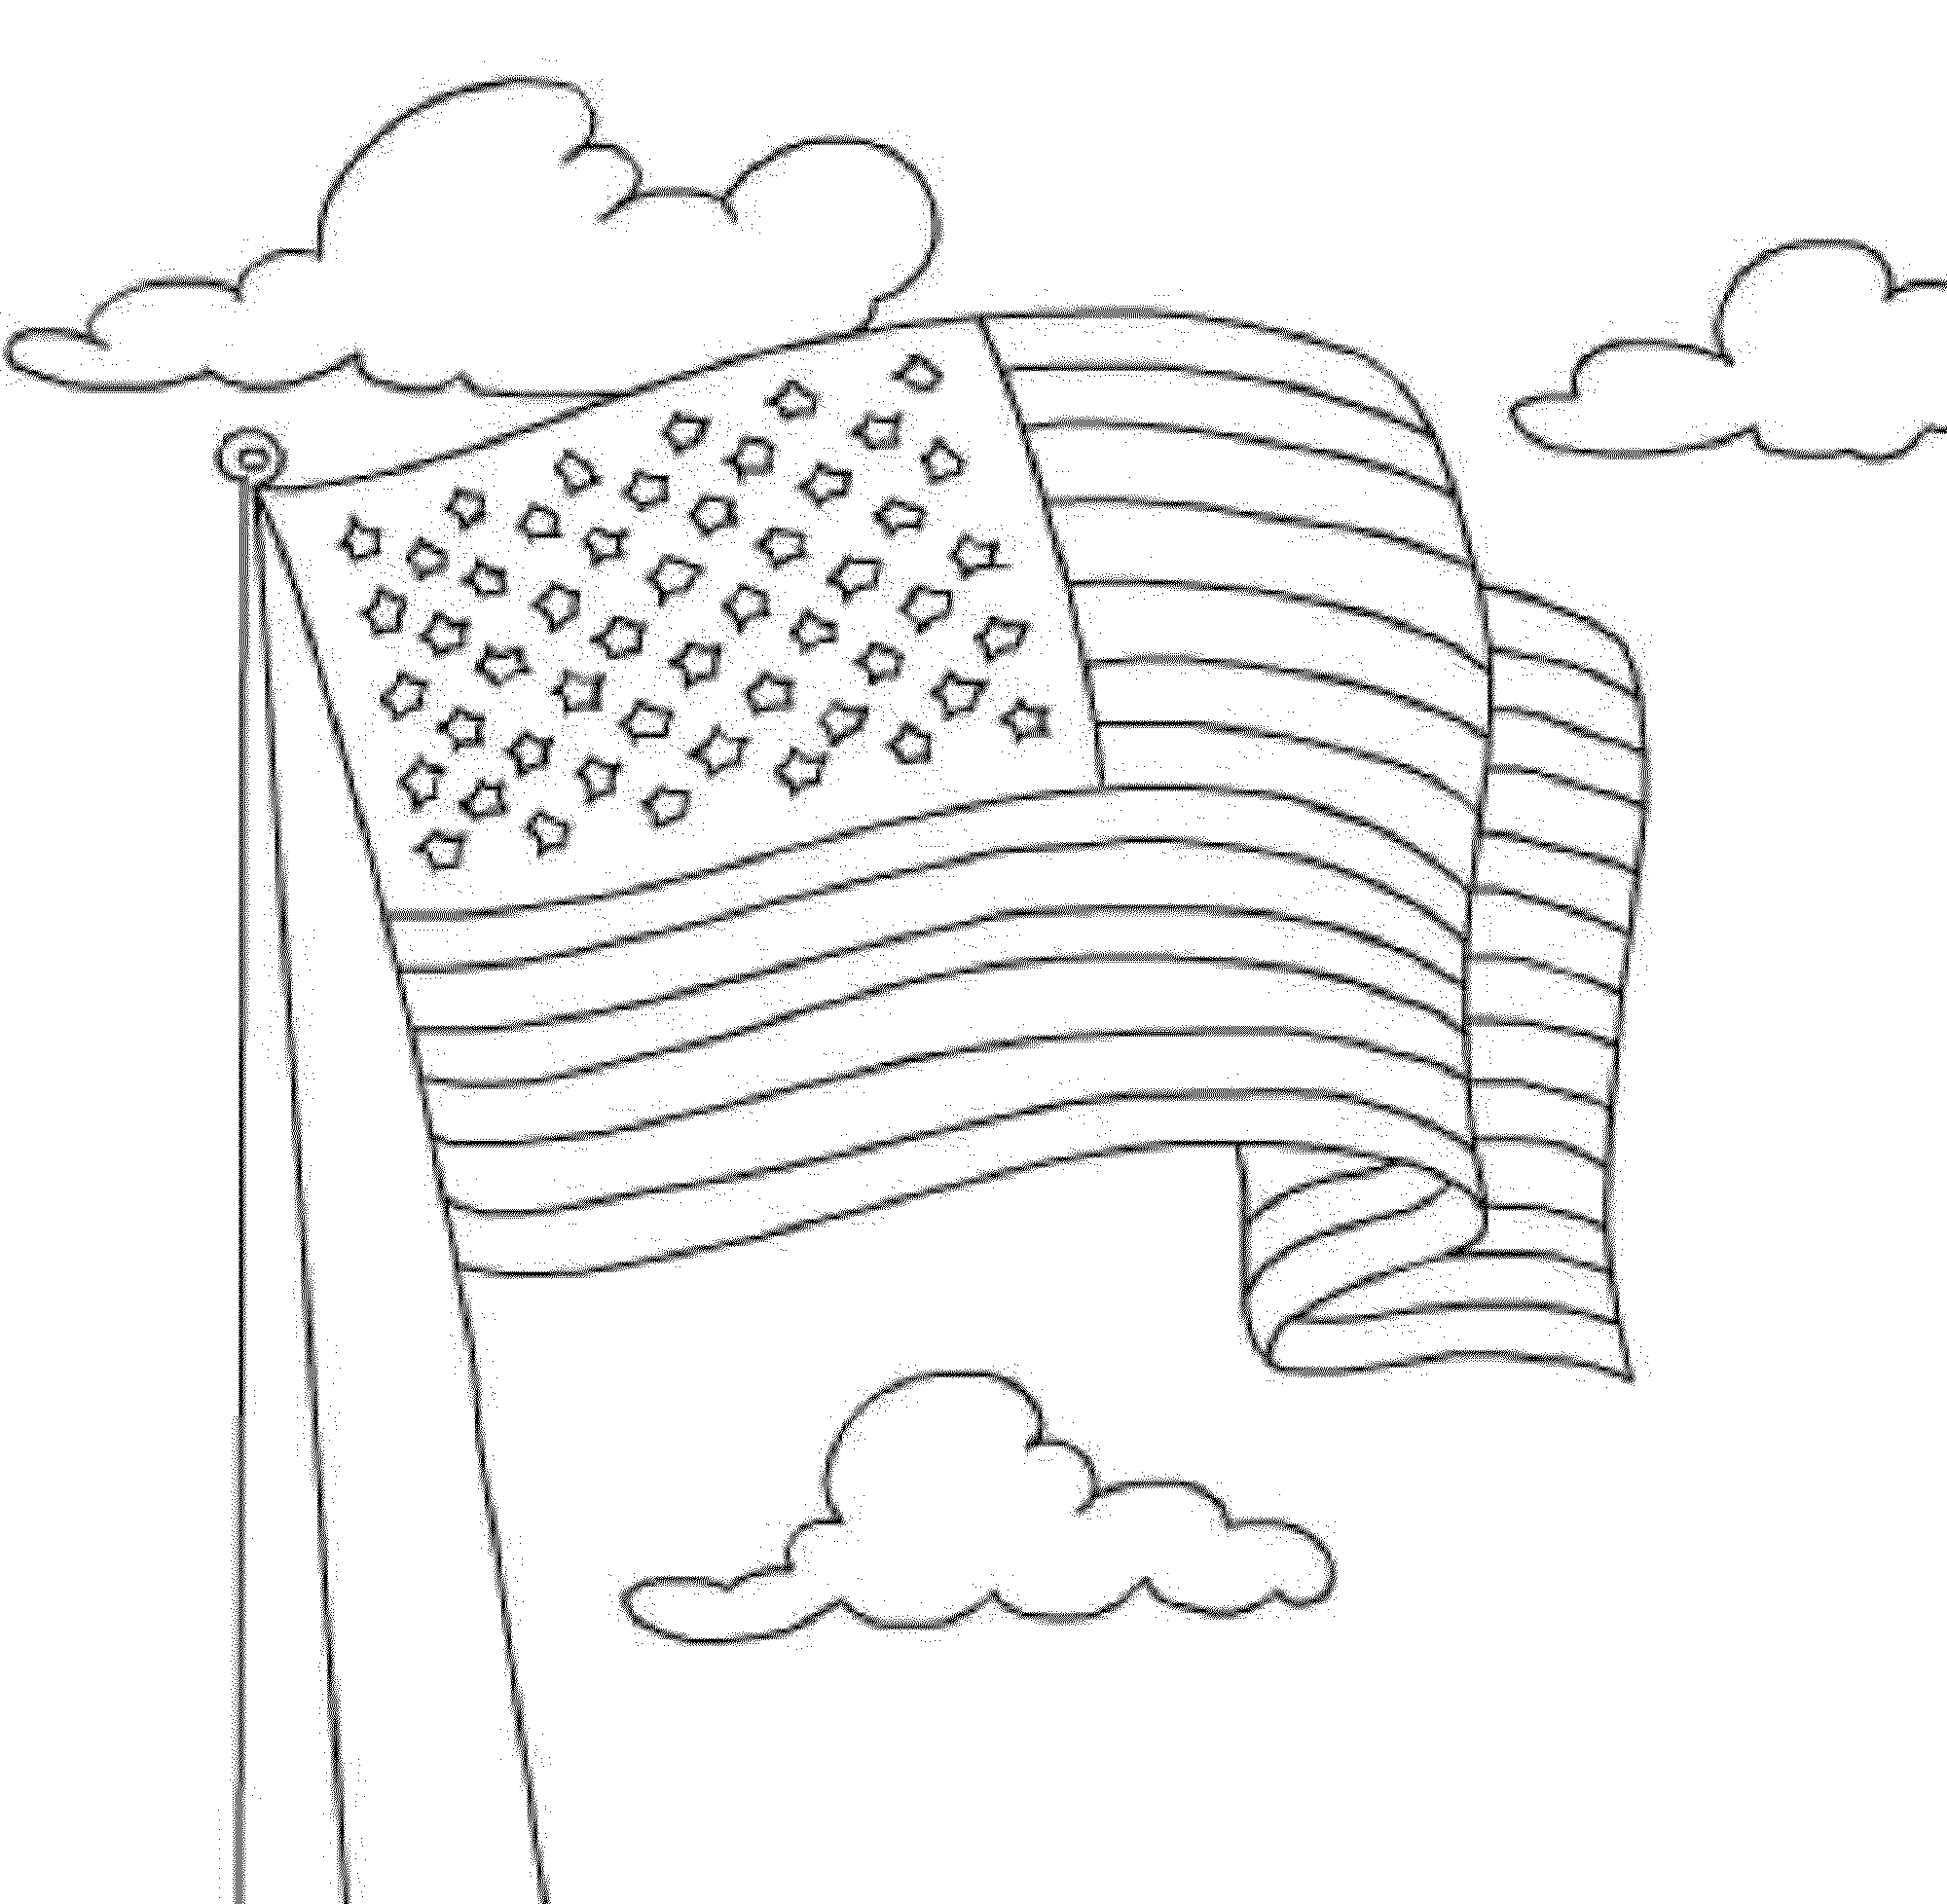 country flag coloring pages american flag coloring page for the love of the country country coloring flag pages